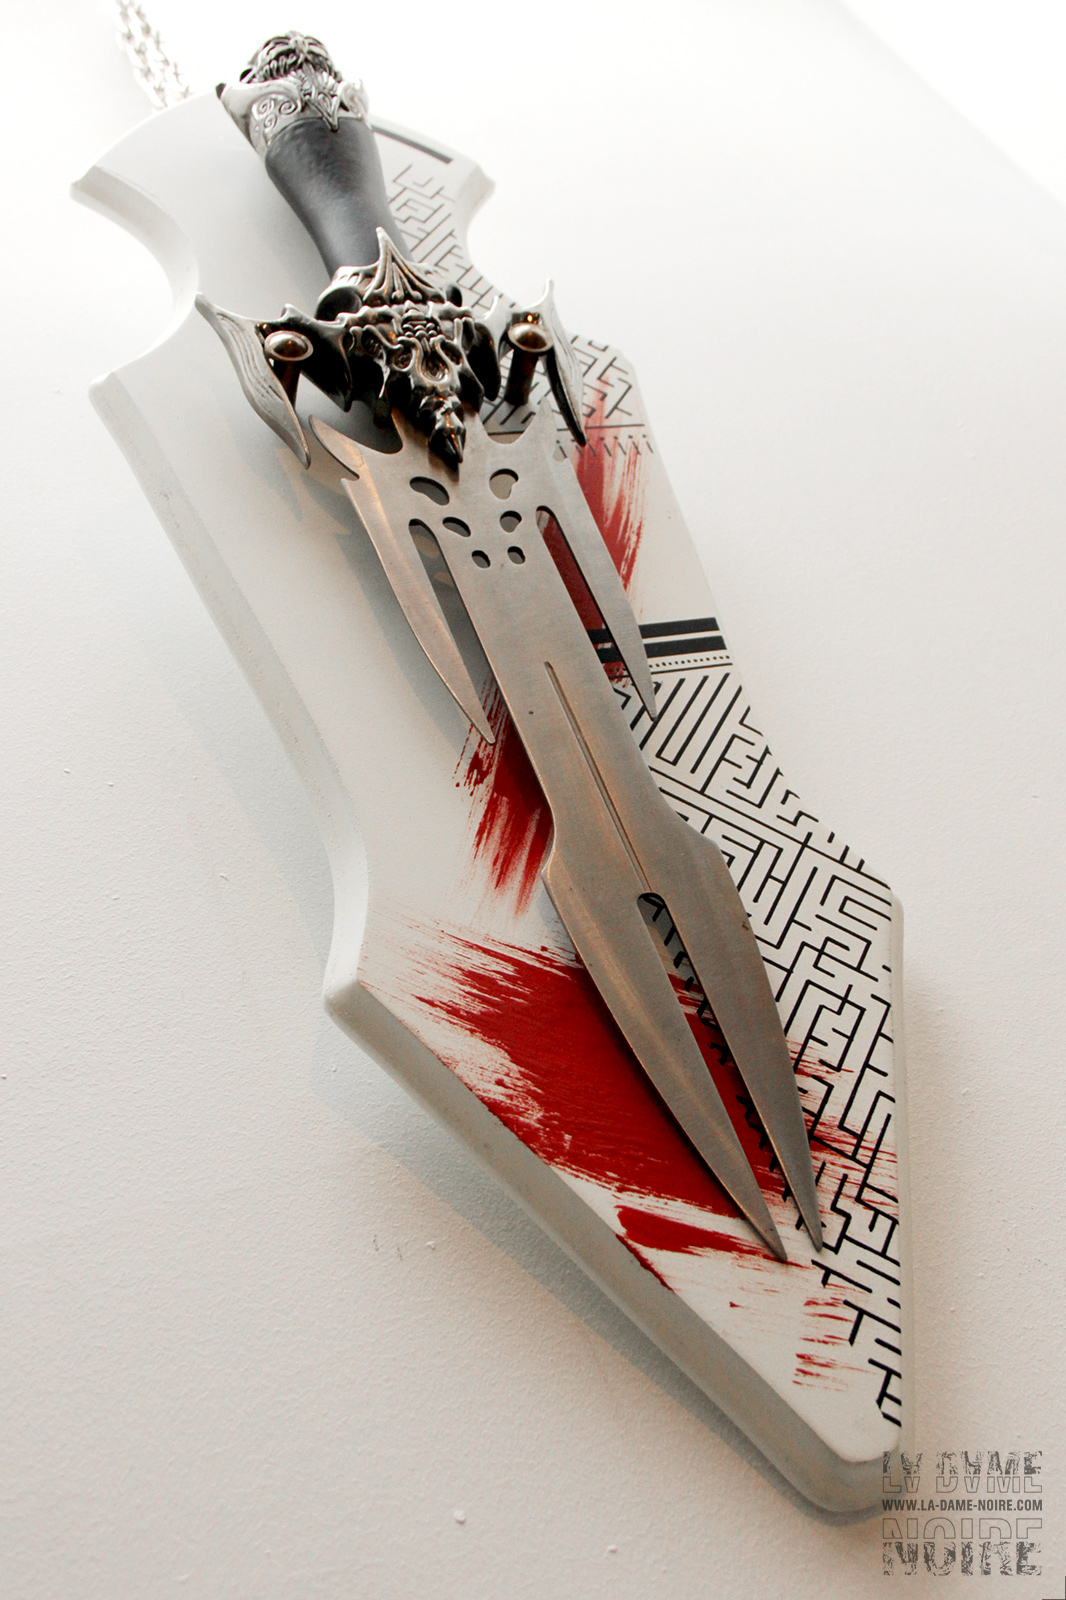 Details of a fantasy viking sword painted in white and red